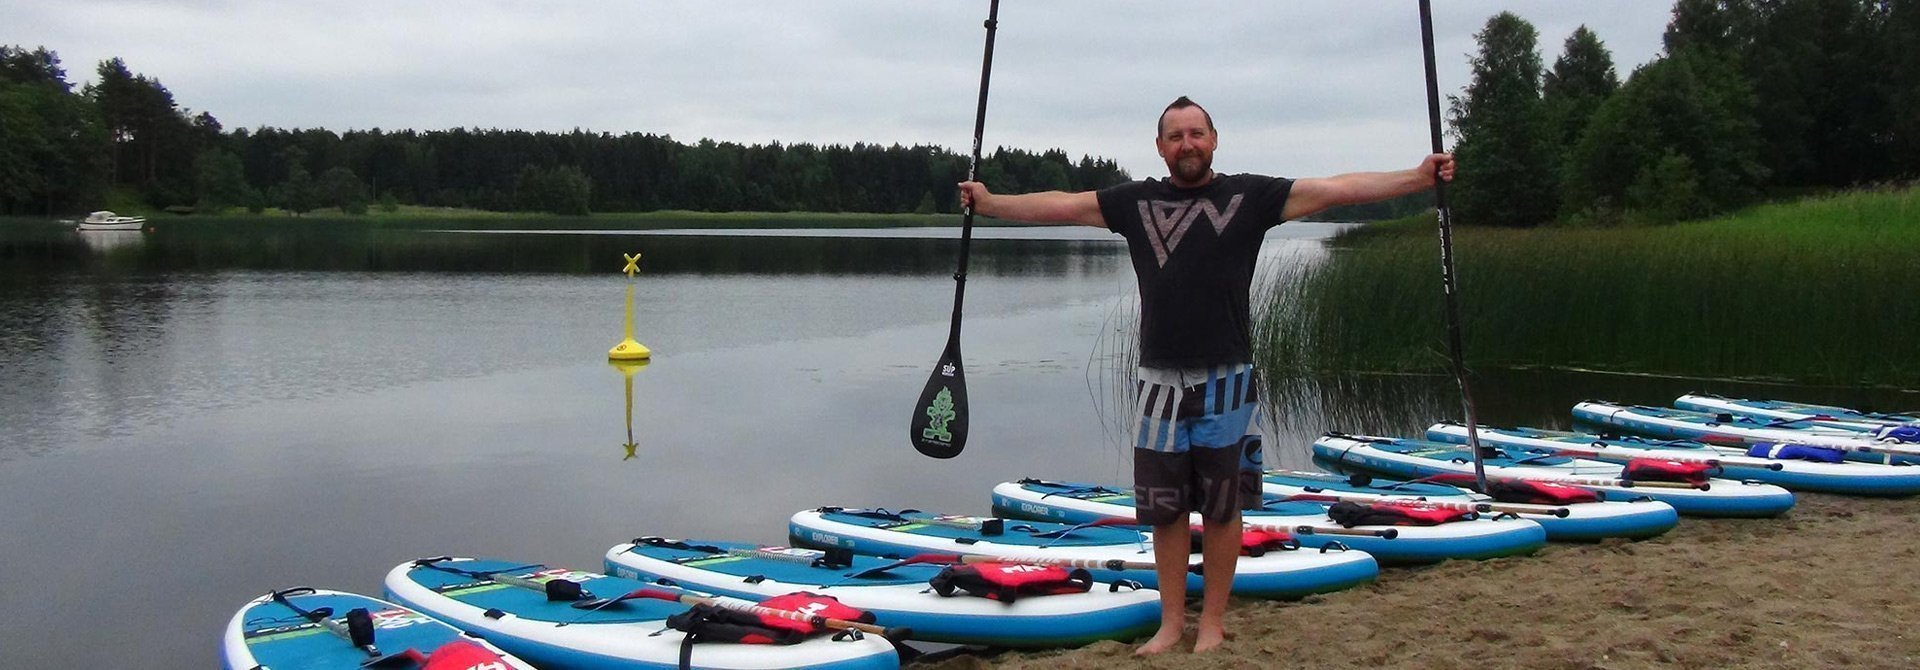 SUP Norway - Stand up paddling - Titus awaiting a class to arrive. Vannsjø